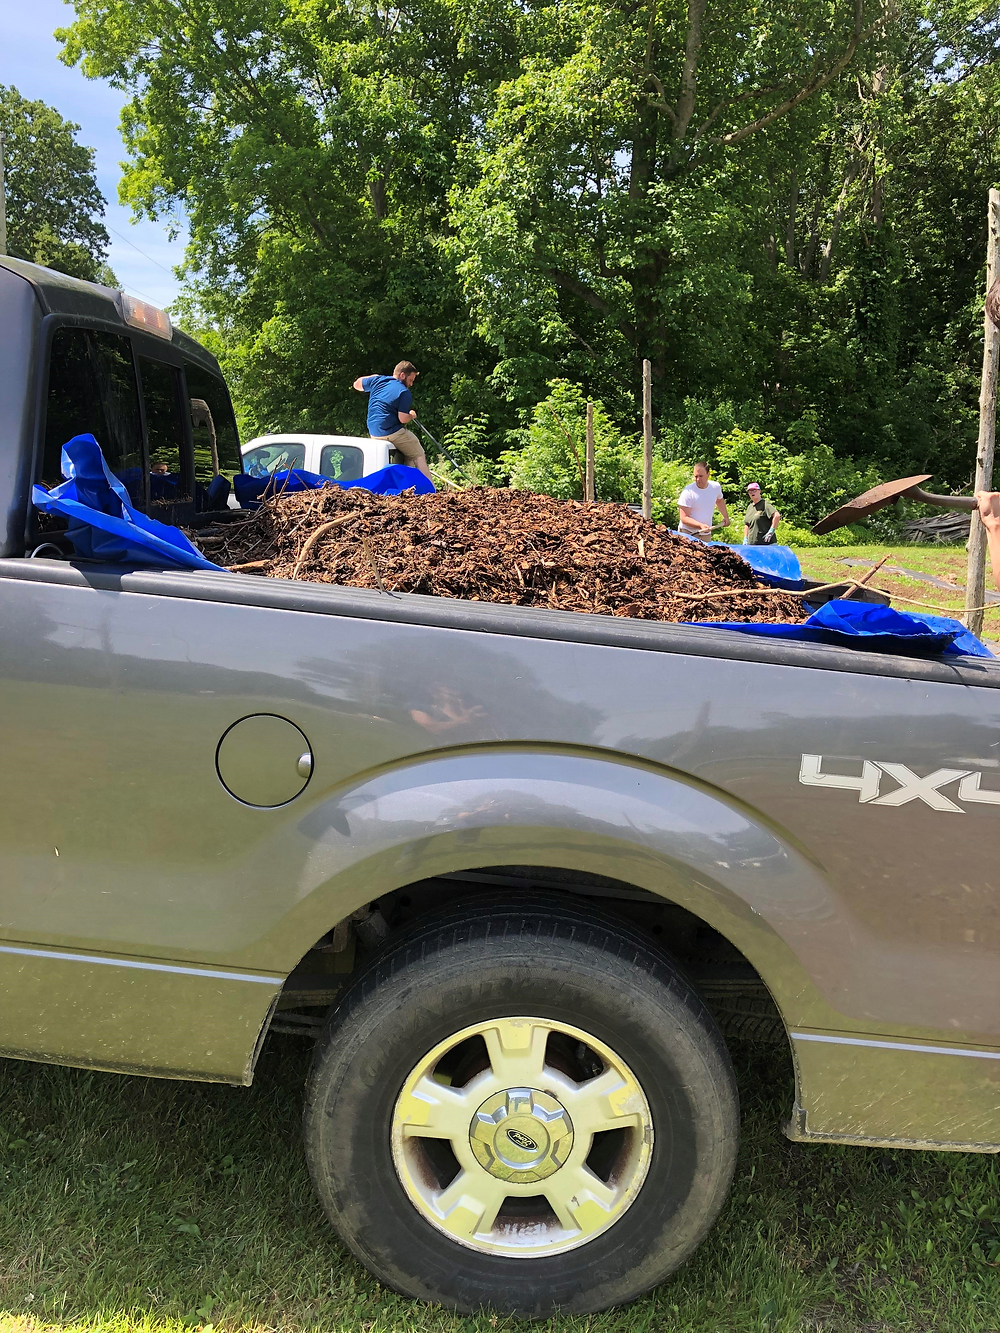 Thank you to Craig Floyd of the DPNC Coogan Farm Giving Garden for taking the time to load eight truckloads of wood chips for the Jason Brear of the ARC of SE CT Garden in Ledyard!